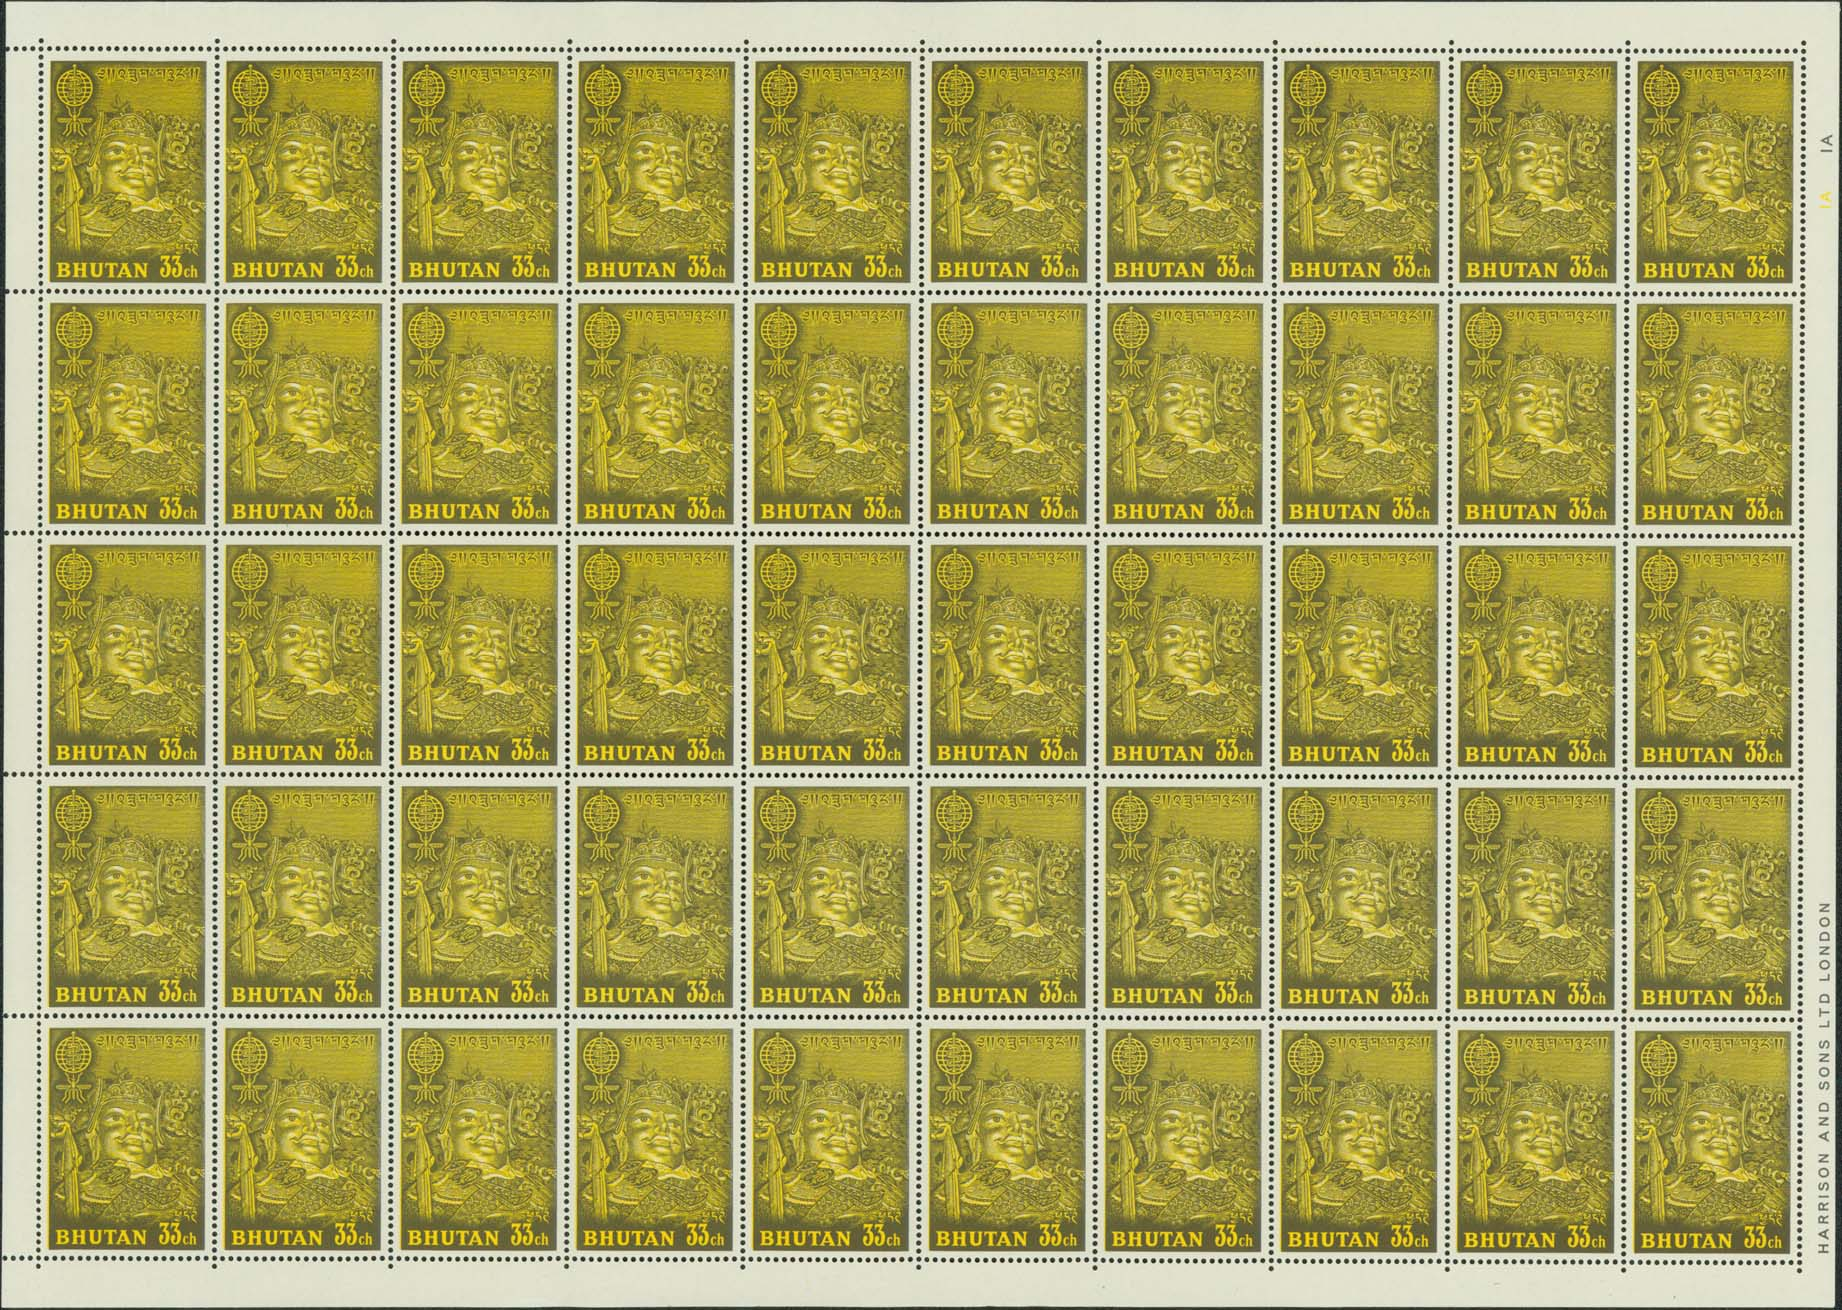 1962 Unissued Anti-Malaria 33ch Guru Rinpoche sheet in the planned colors